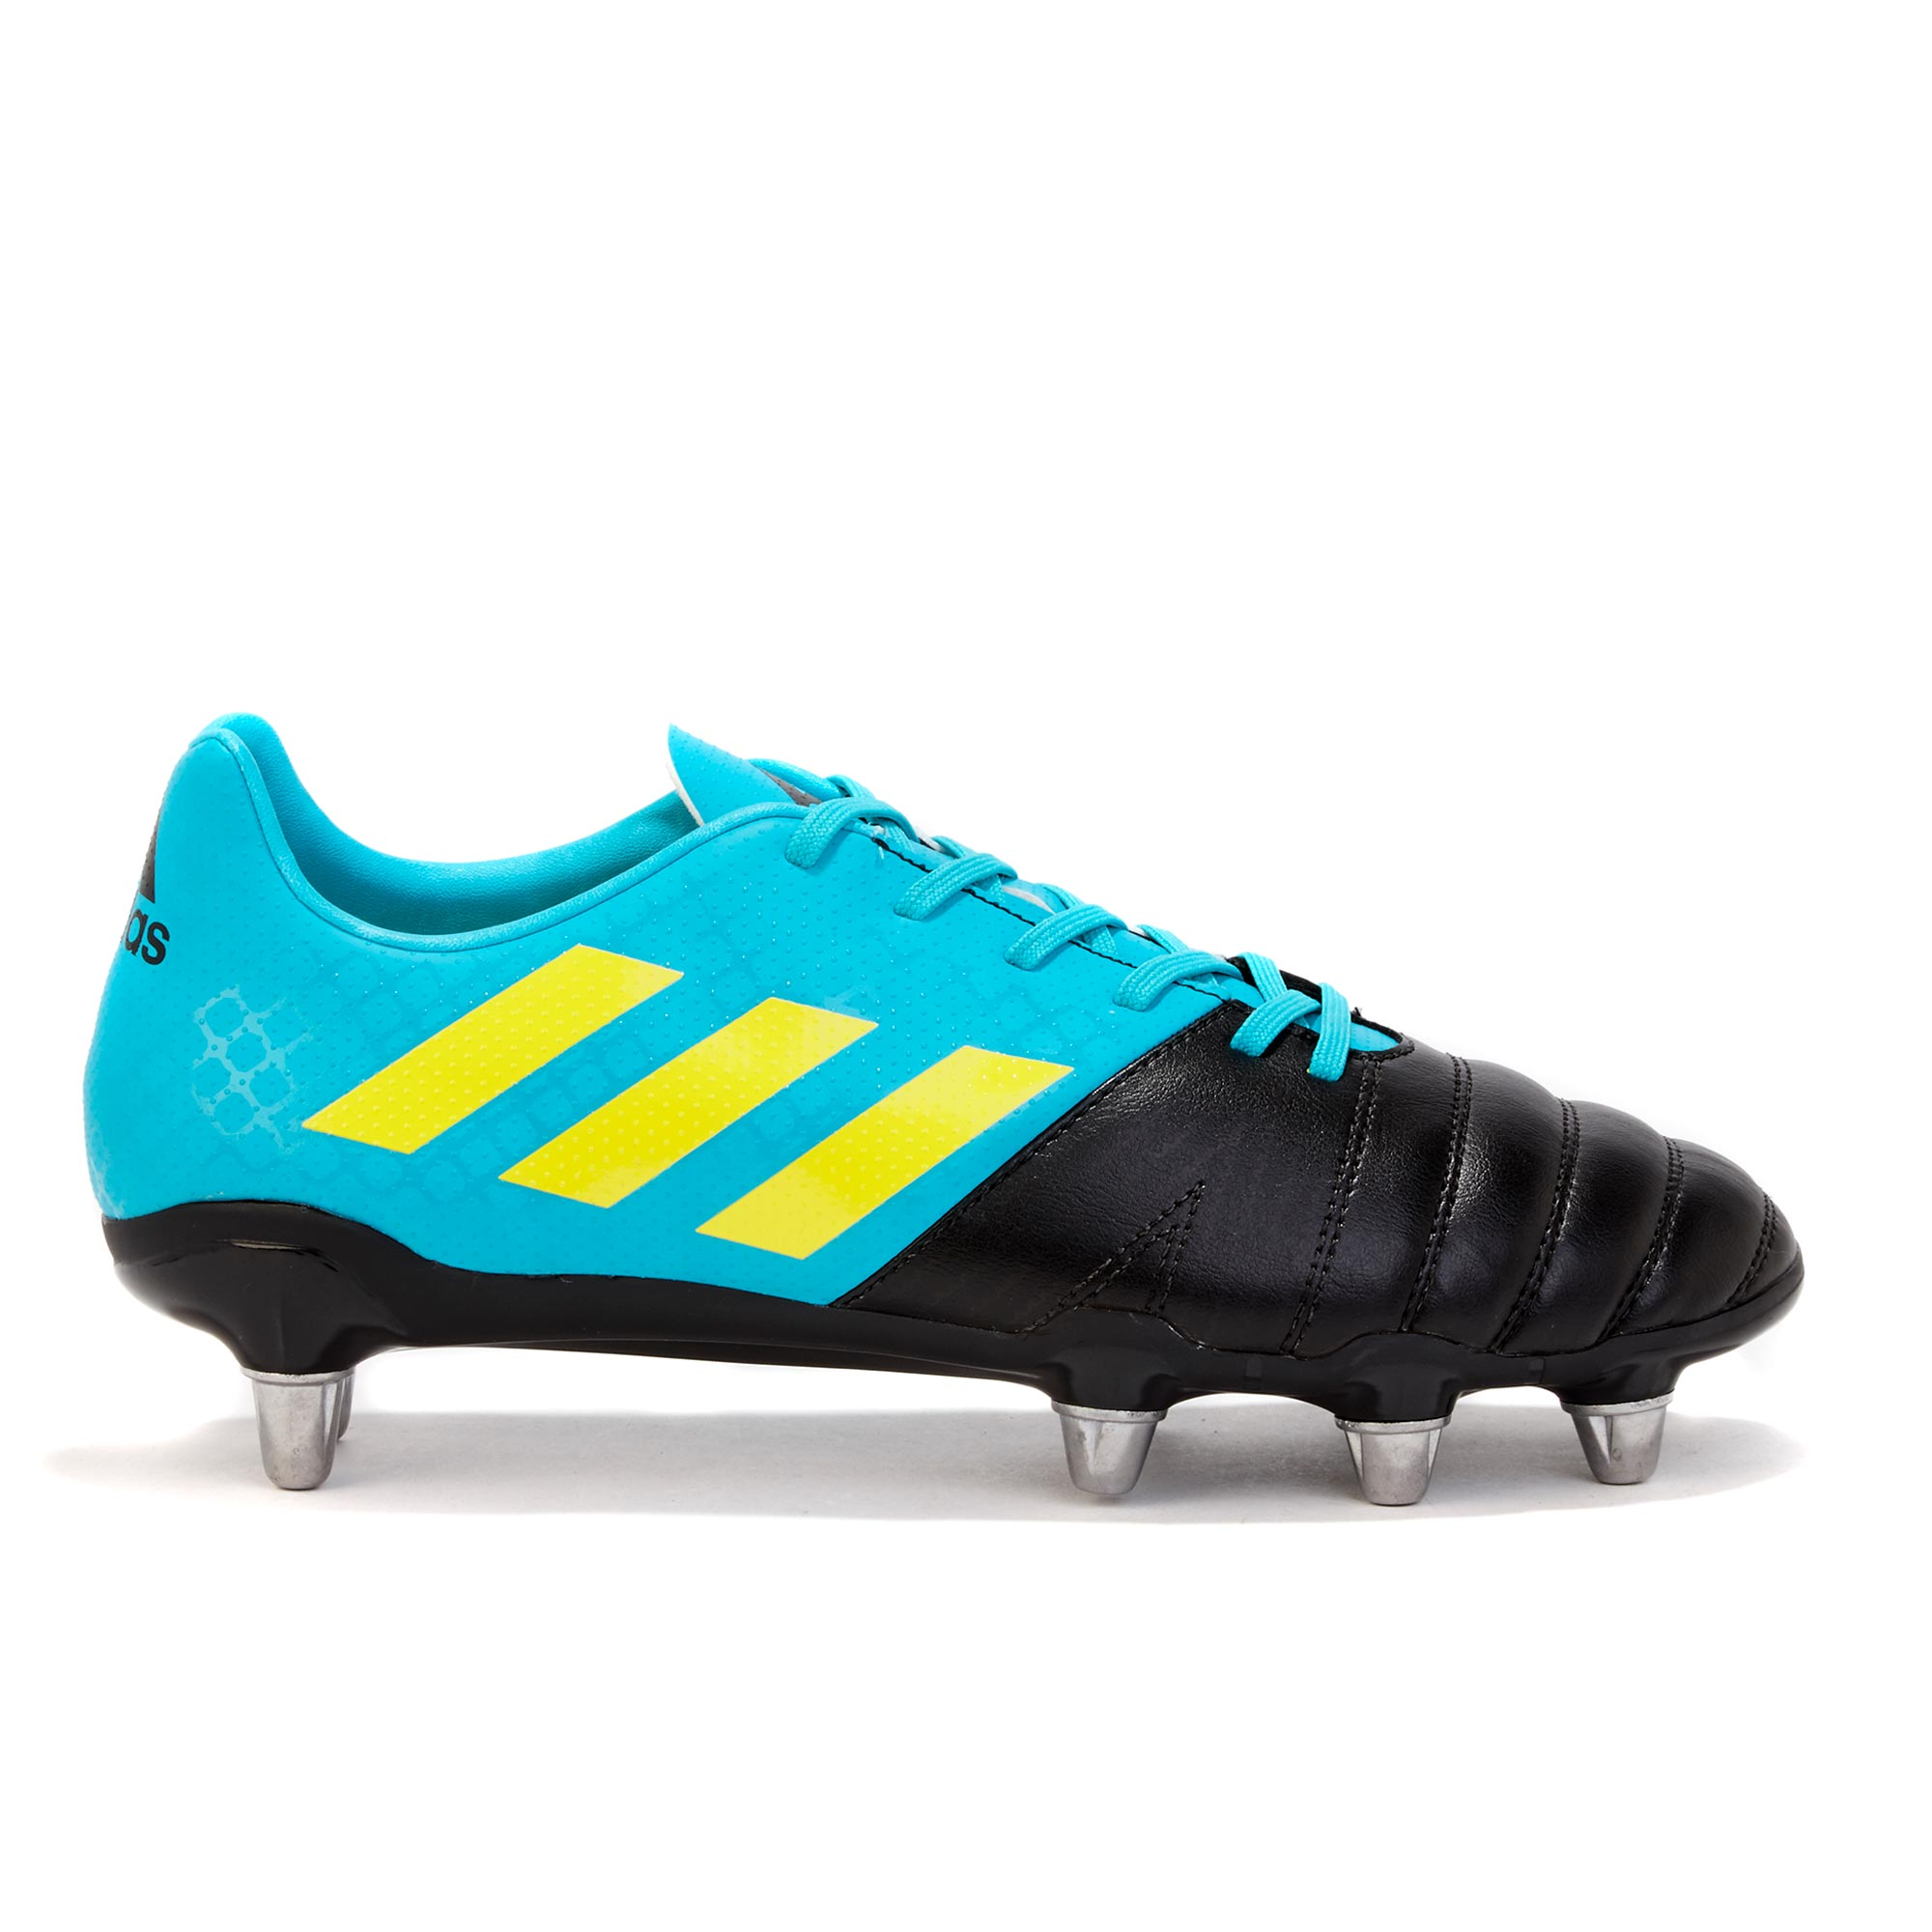 "Image of ""adidas Kakari - Soft Ground Rugby Boot - Aqua/Yellow/Black"""